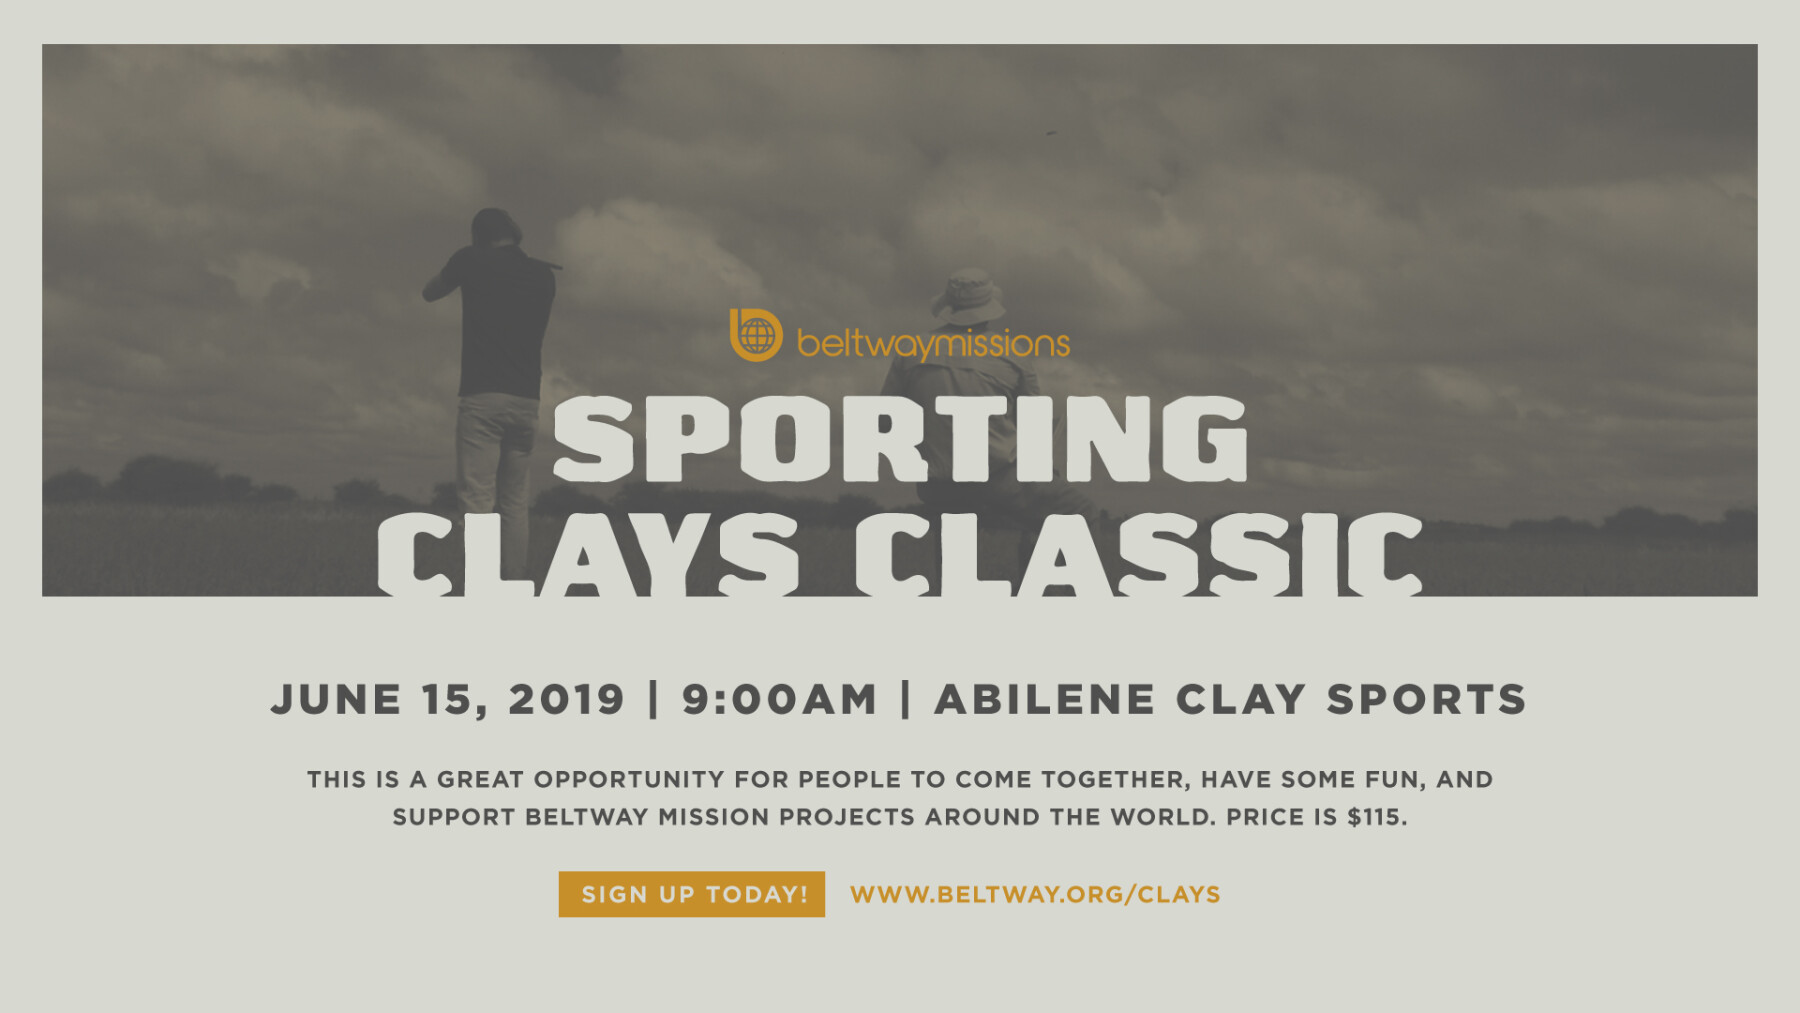 Beltway Sporting Clays Classic